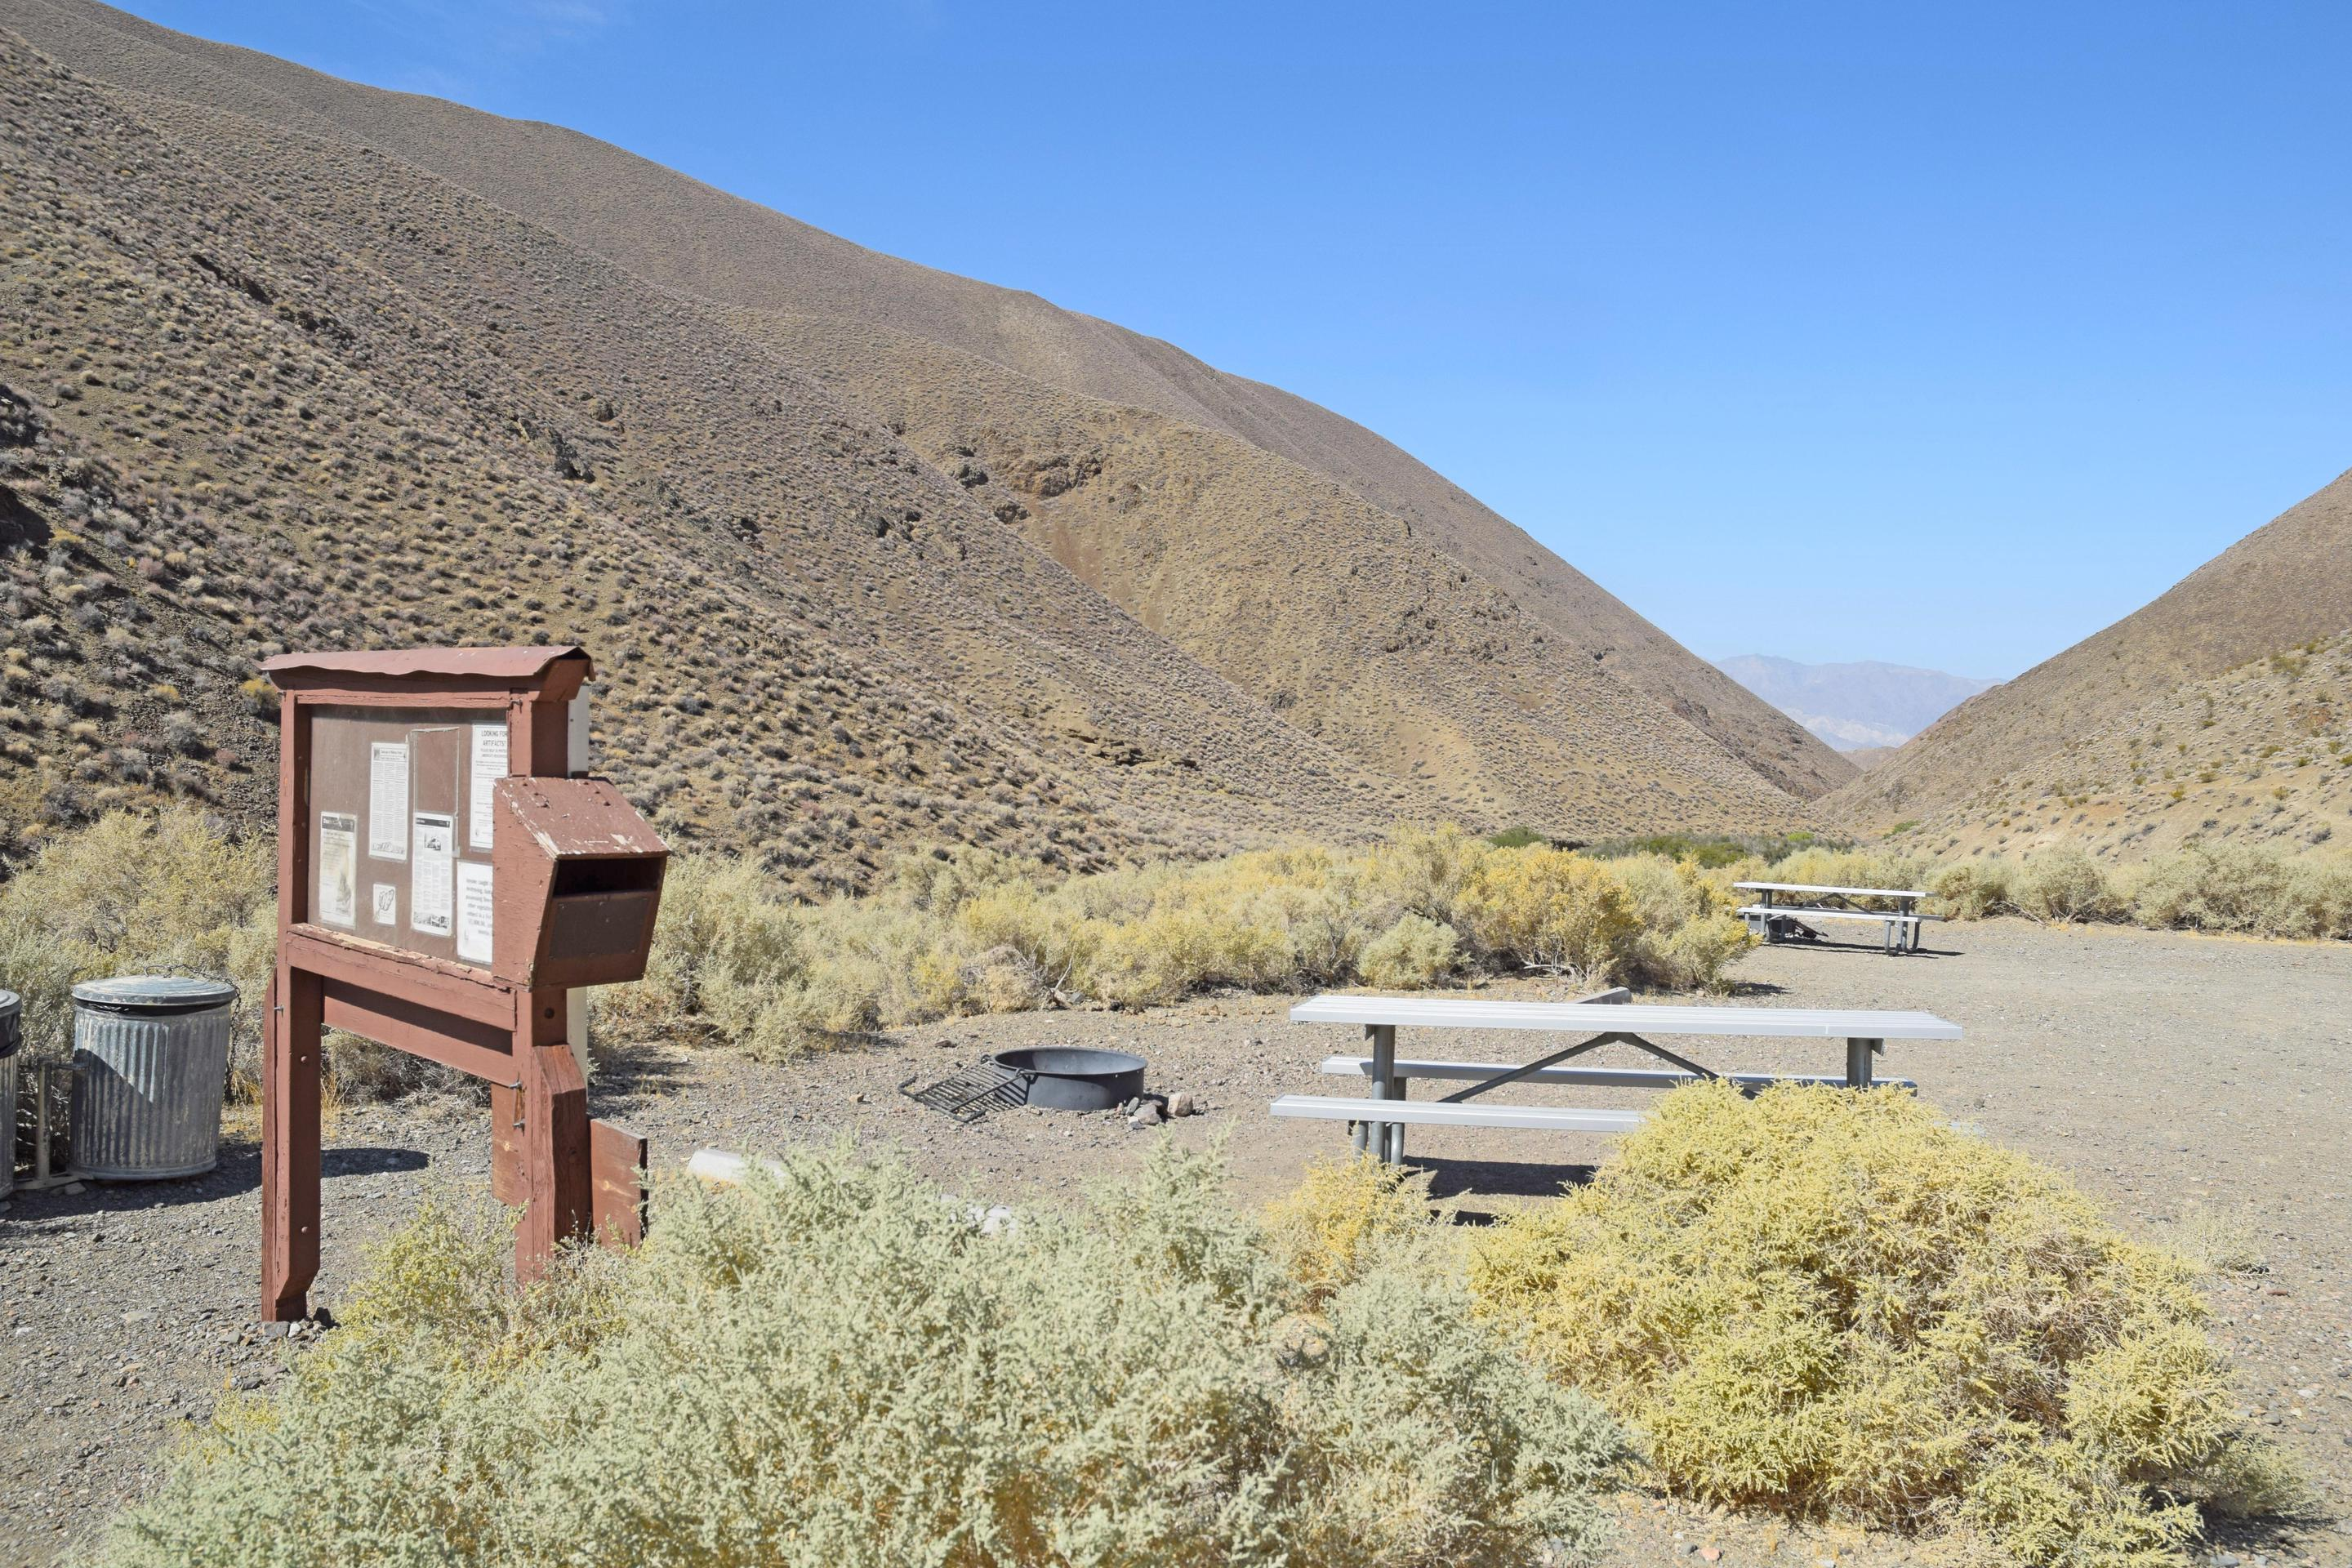 Wildrose CampgroundThis campground is in a valley between gently rolling hills in the Panamint Range.